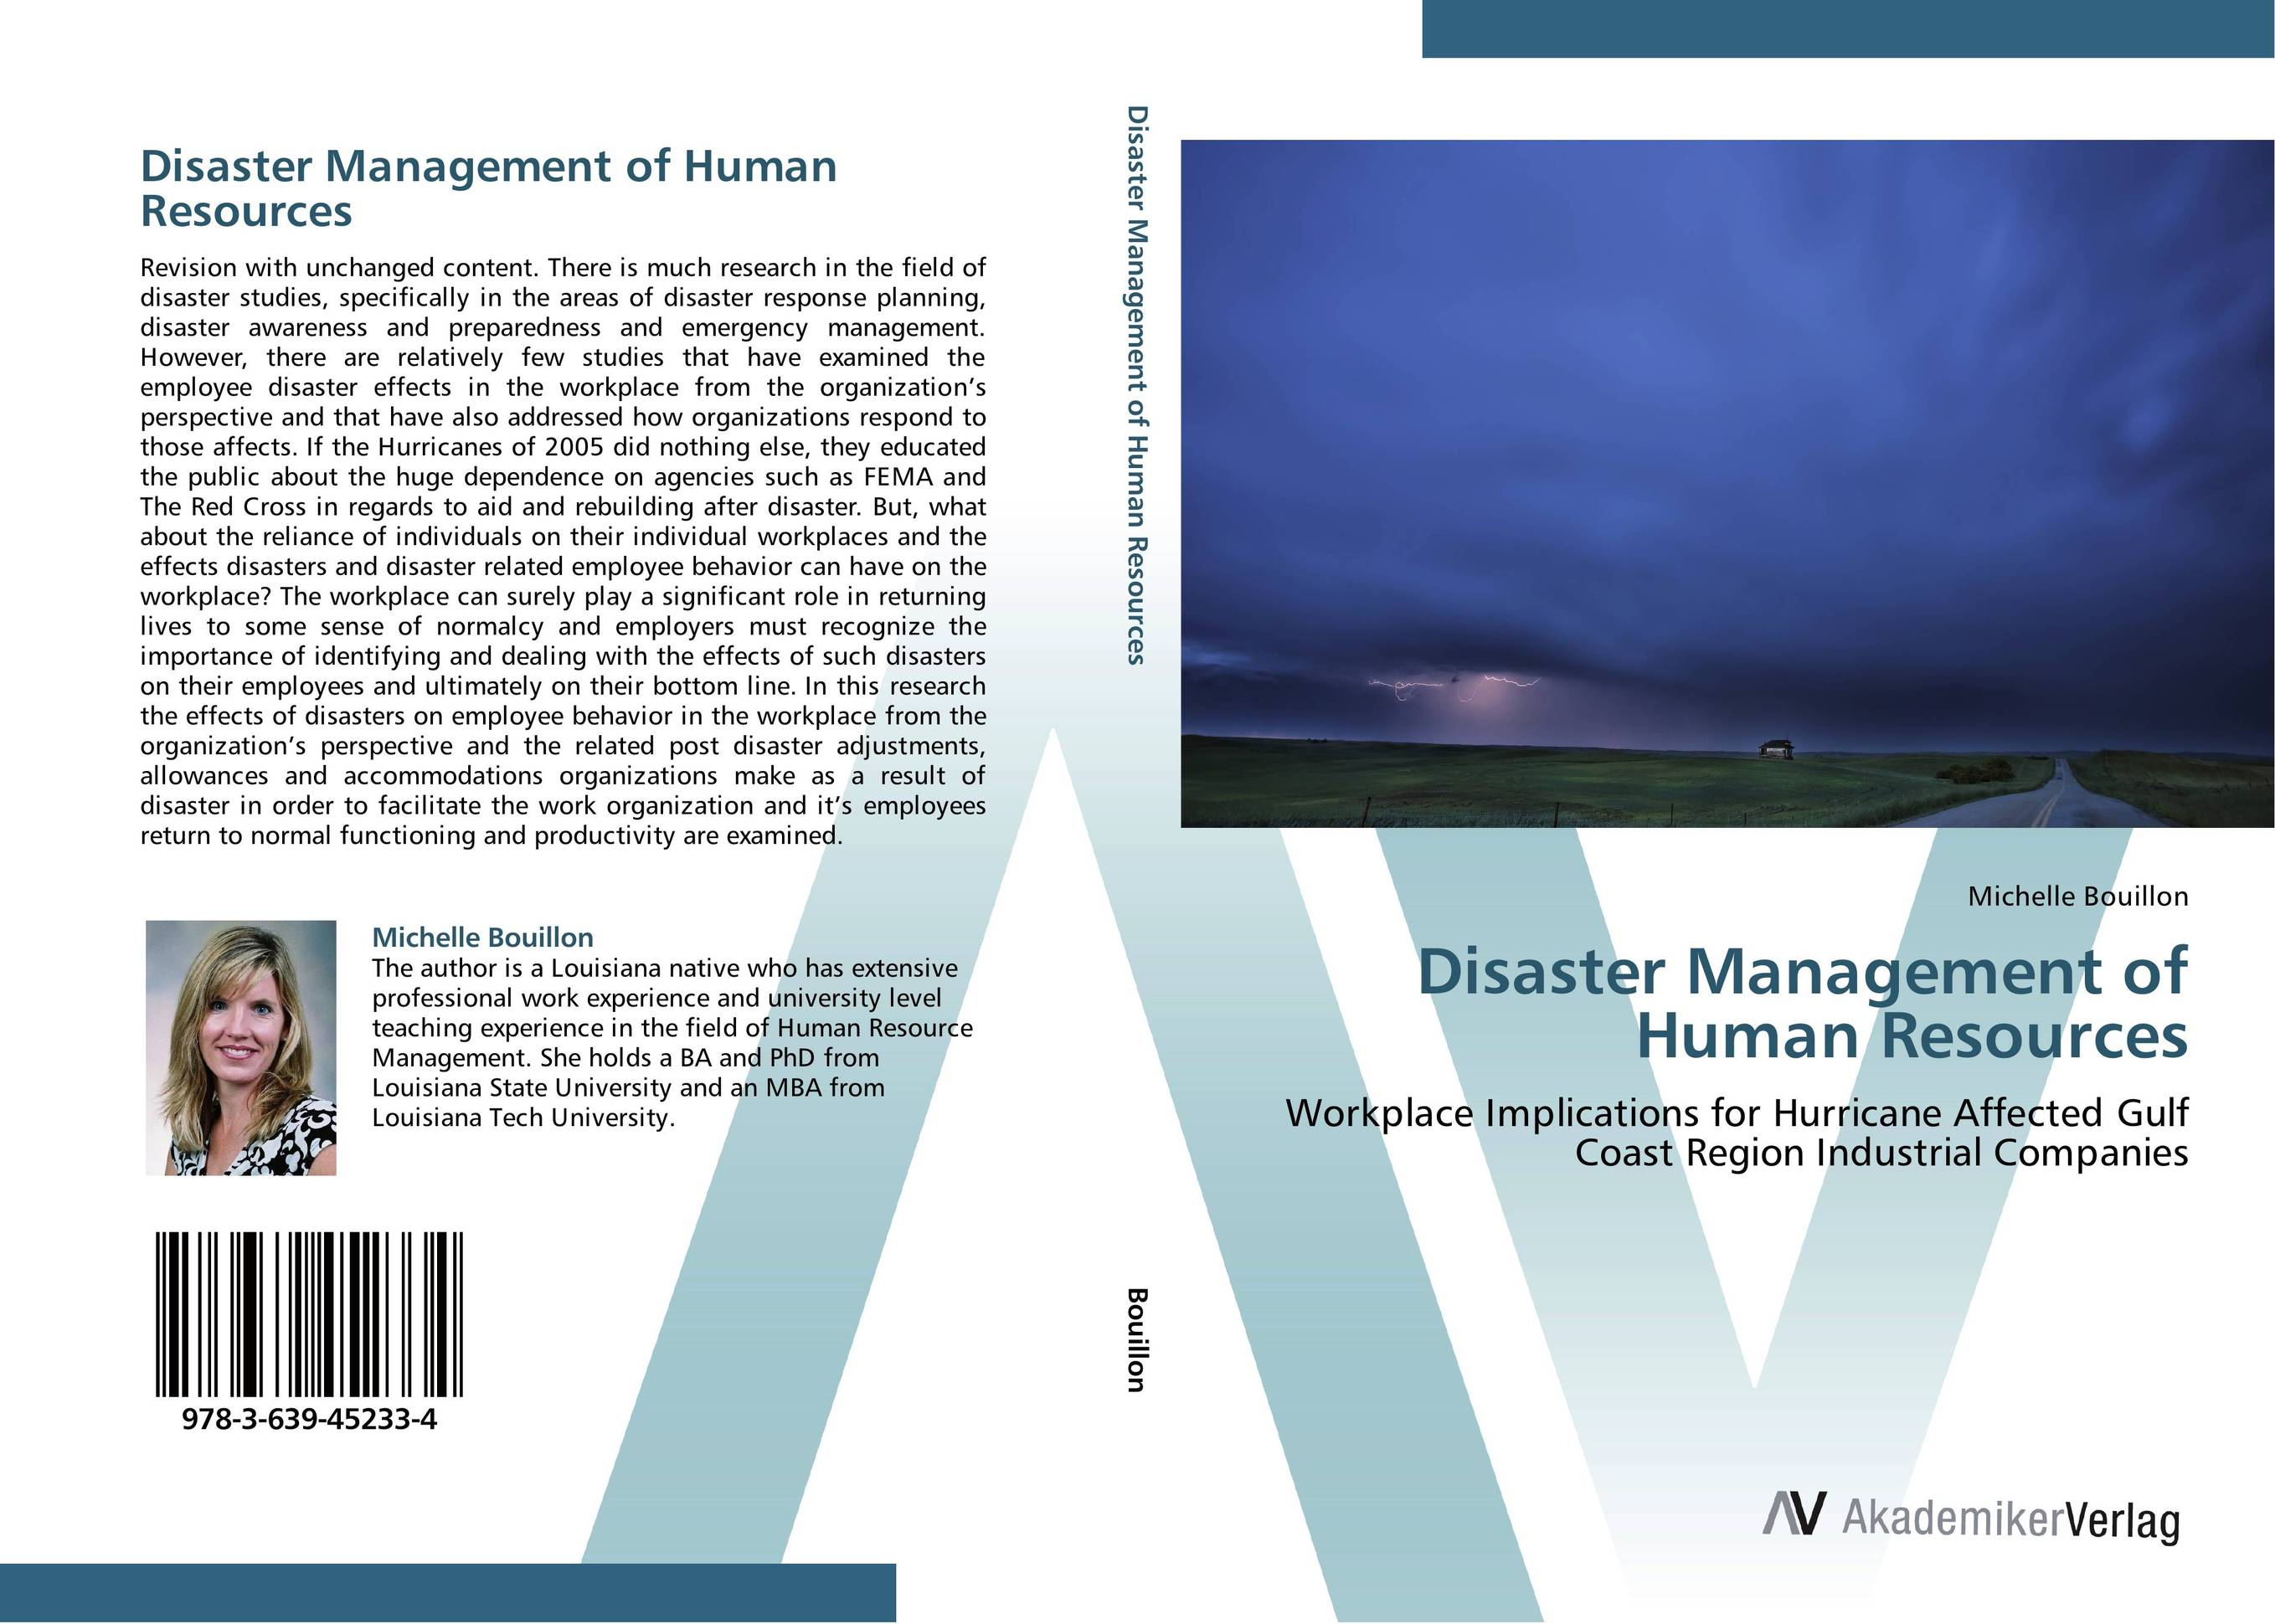 Disaster Management of Human Resources